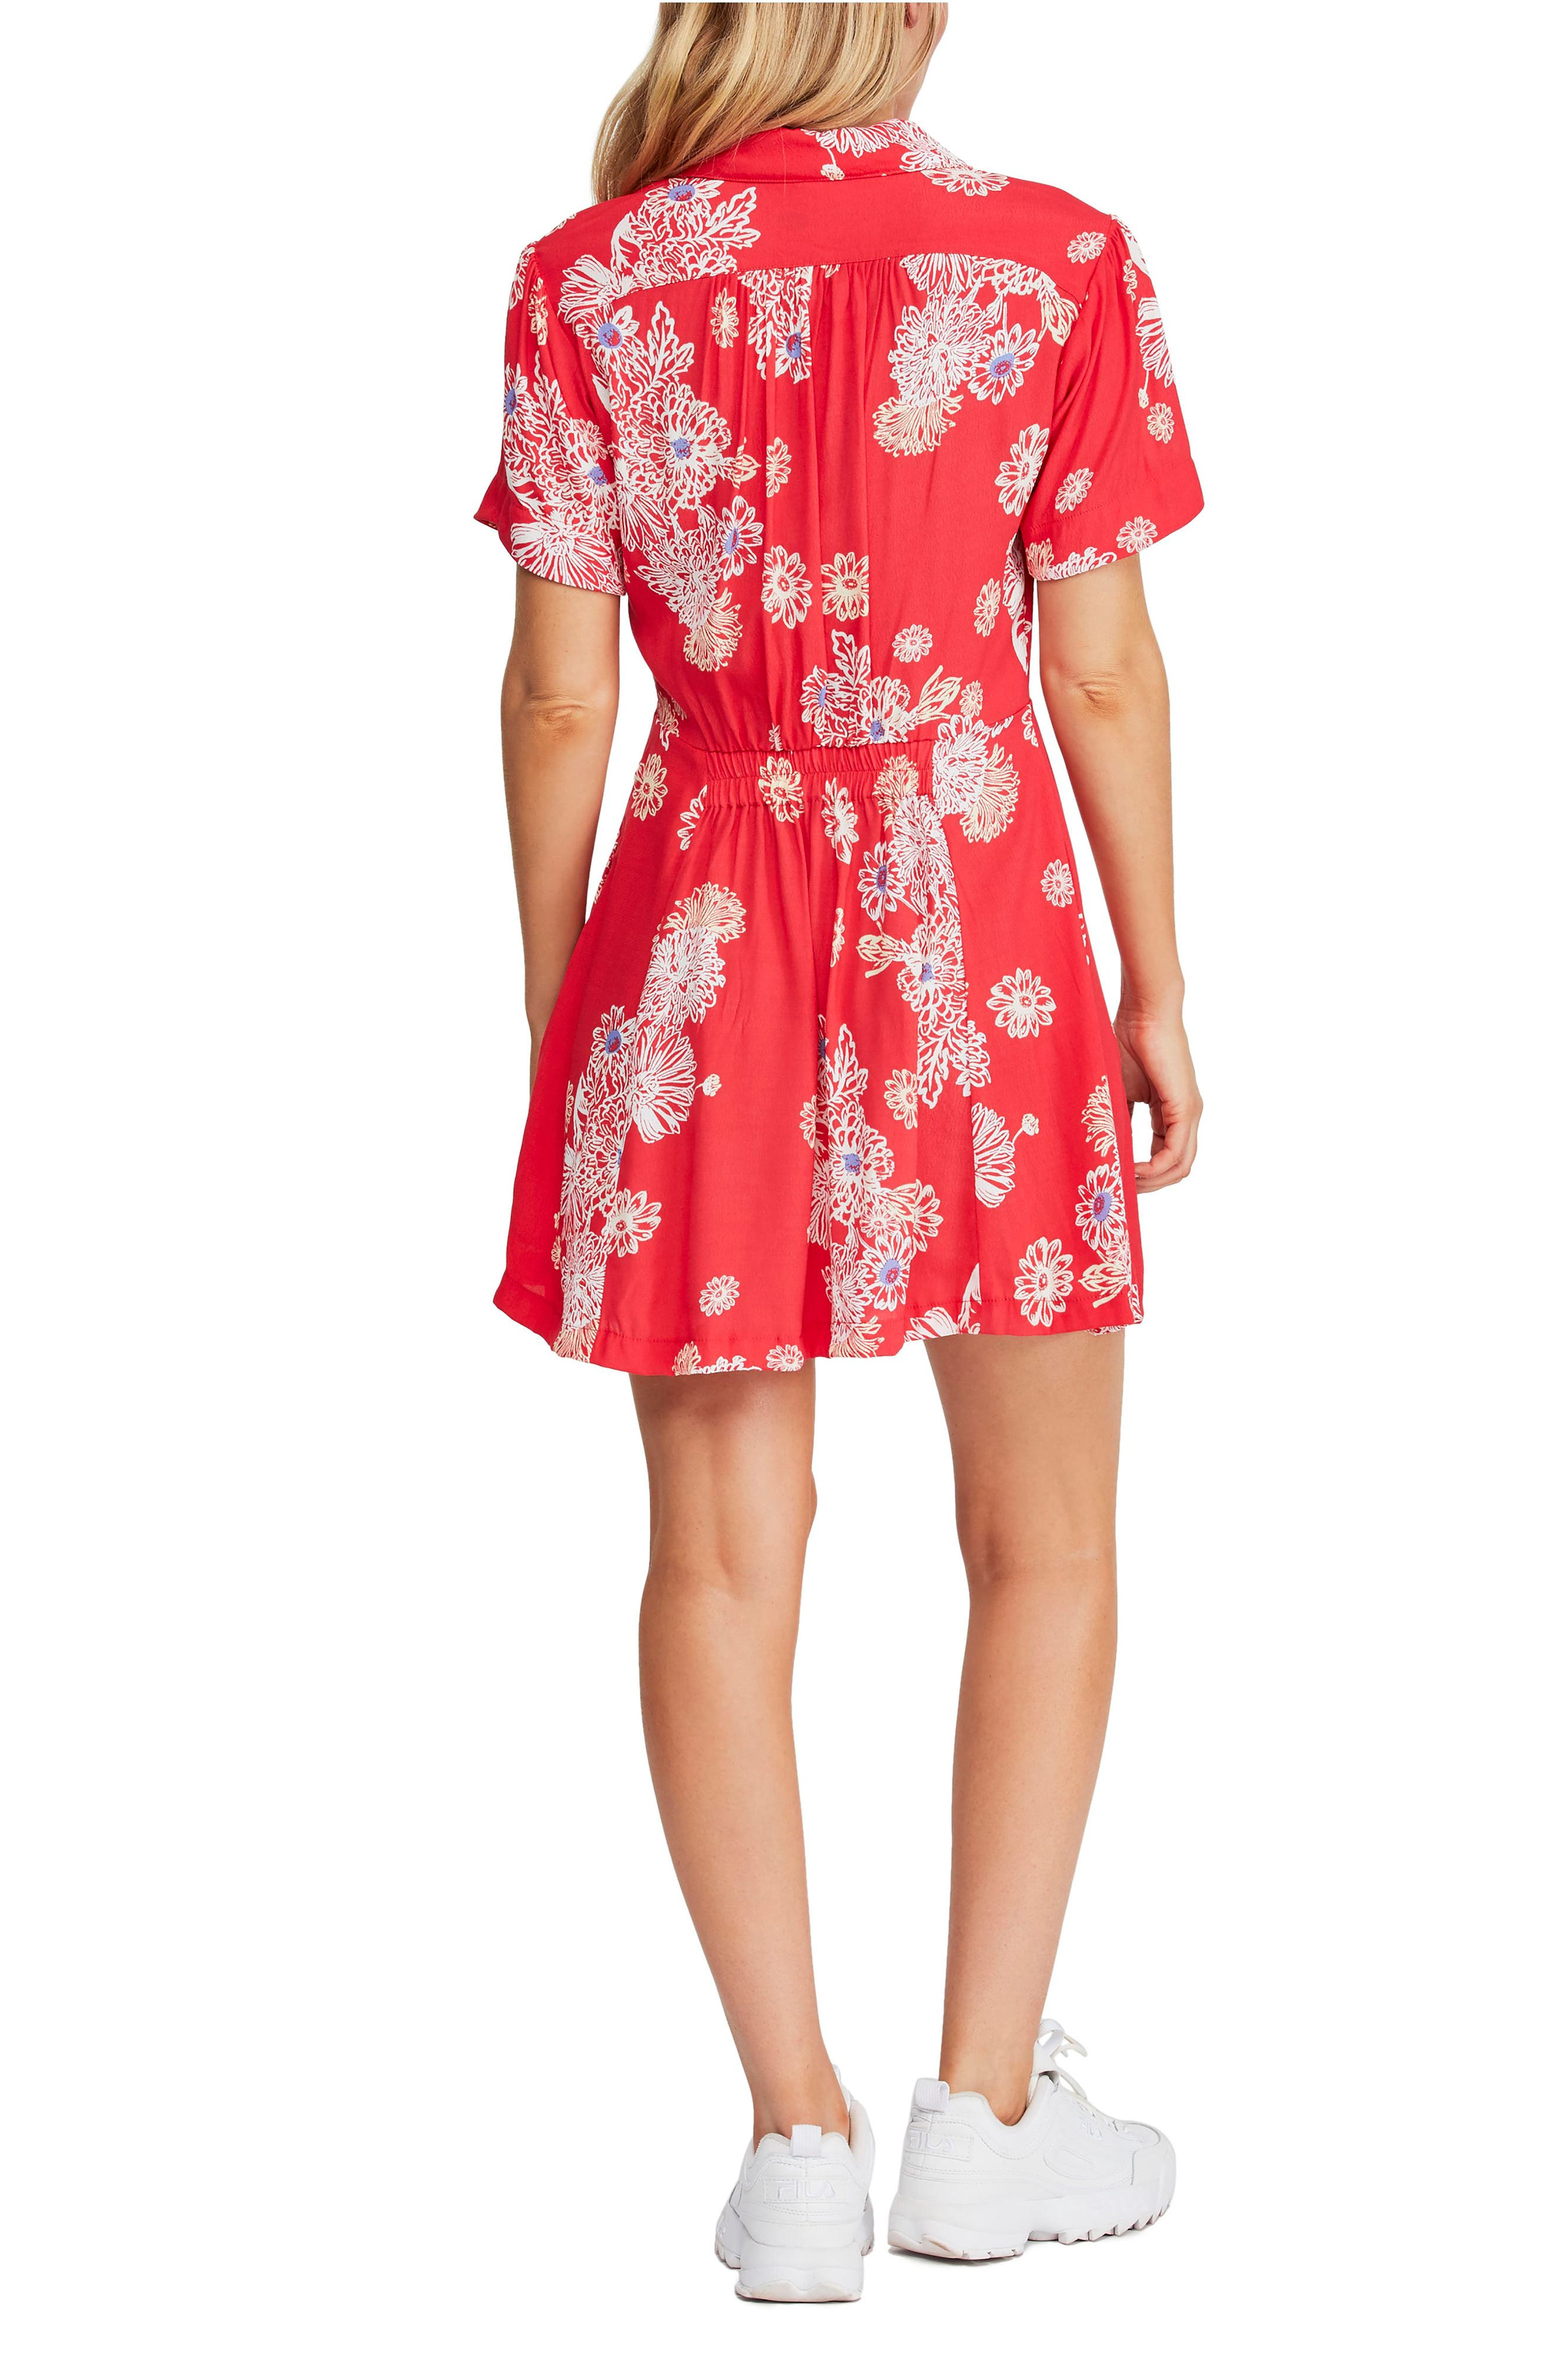 FREE PEOPLE, Blue Hawaii Minidress, Alternate thumbnail 2, color, RED COMBO